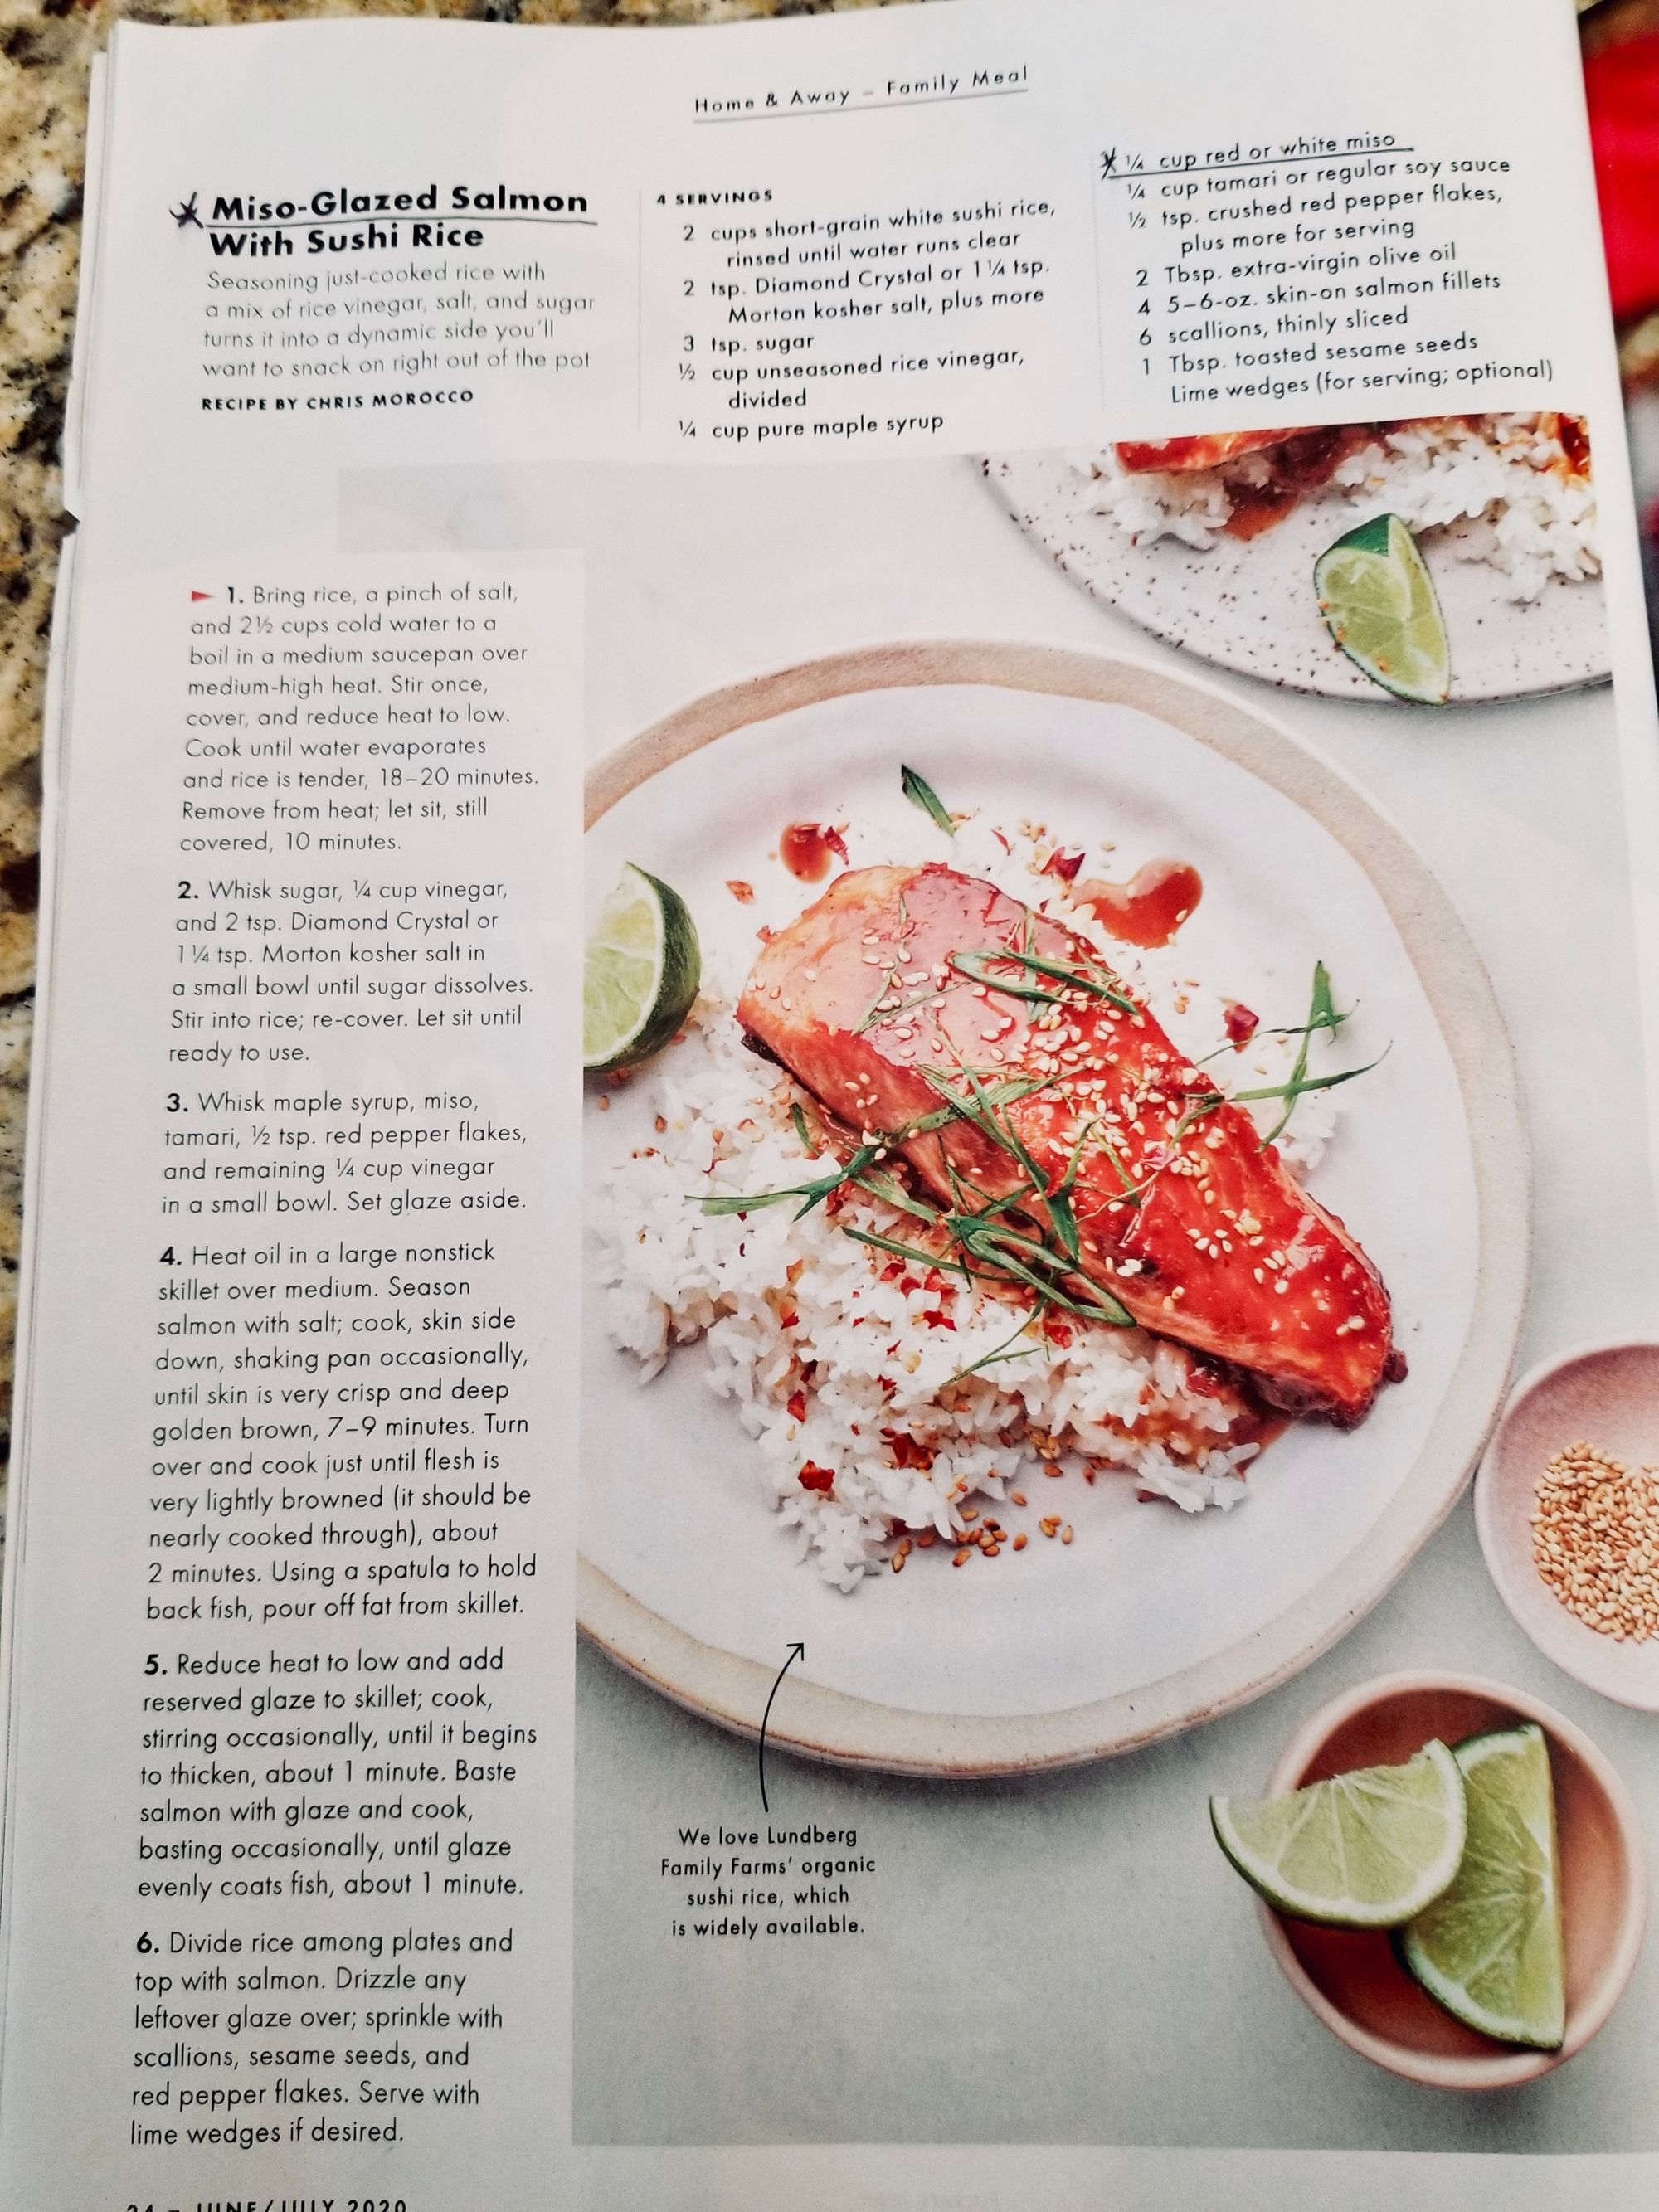 Delighted to see Miso incorporated into recipes as a simple flavor enhancer. It is truly delicious :) Find this delicious Miso-Glazed Salmon with Suchi Rice and others in the June/July Bon Appetit Magazine @bonappetitmag . . . #miso #salmon #dinerideas #dinnertime #dinner #dinnerathome #recipes #thesoyfoodscouncil